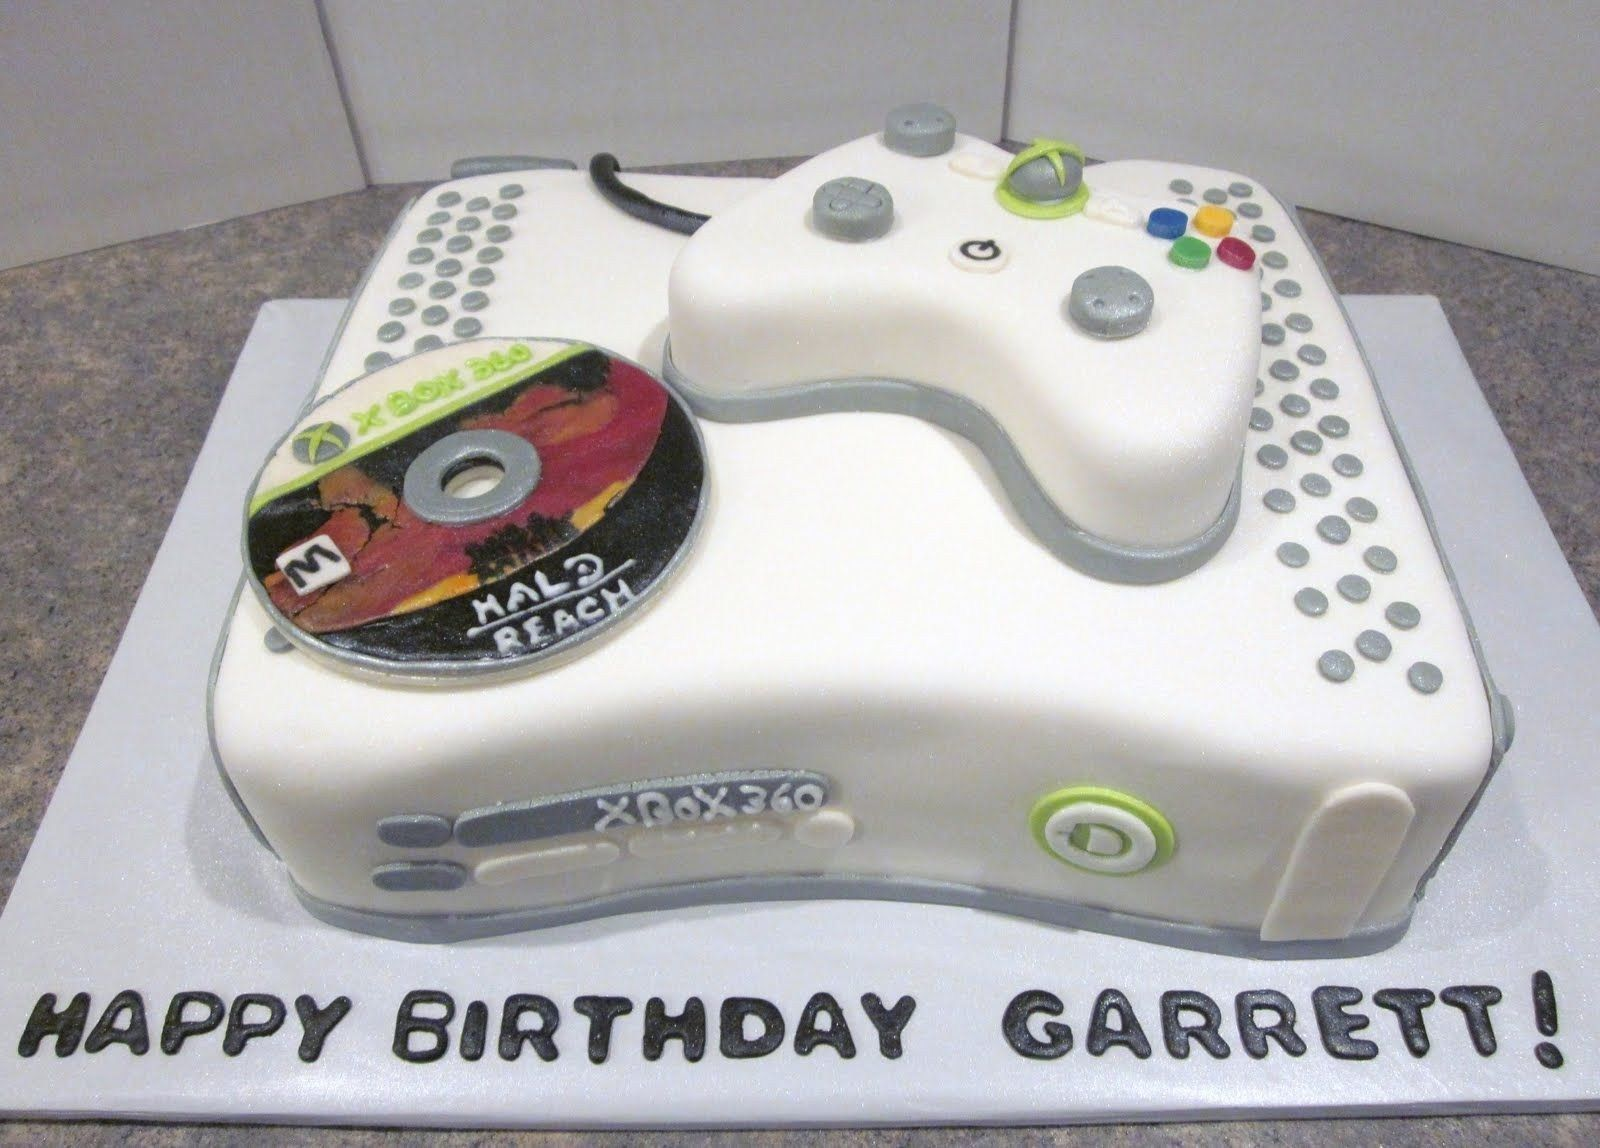 27 Best Image Of Xbox Birthday Cake With Images Xbox Cake